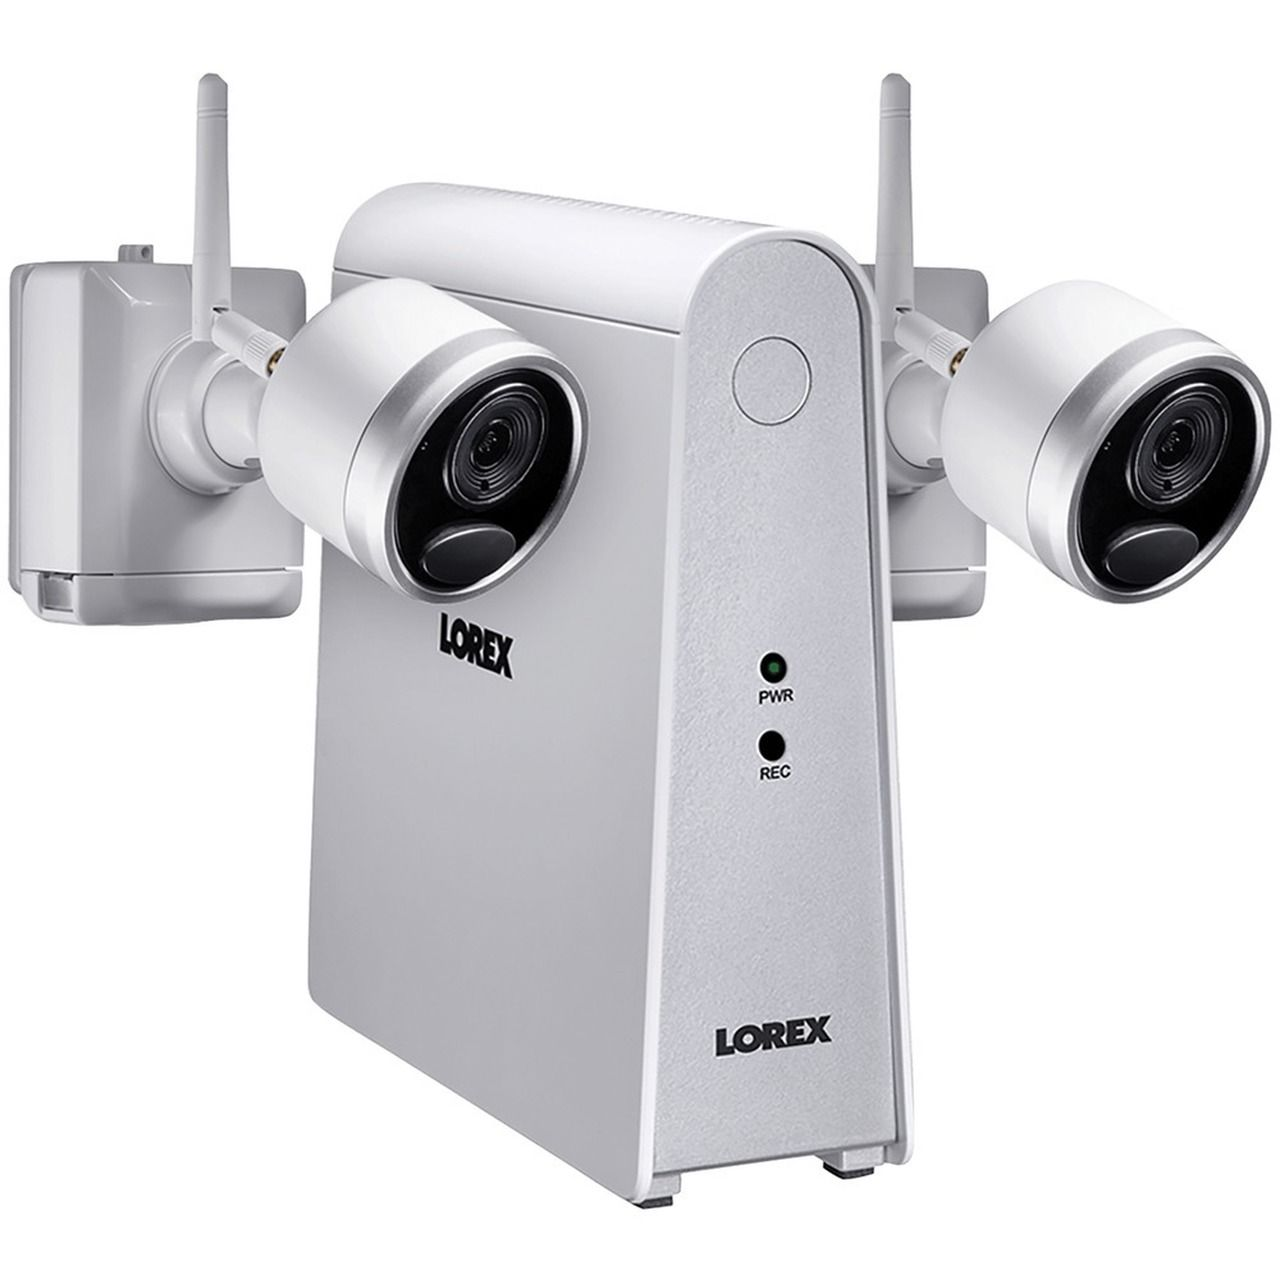 Lorex 1080p Full Hd Wirefree Security System With 2